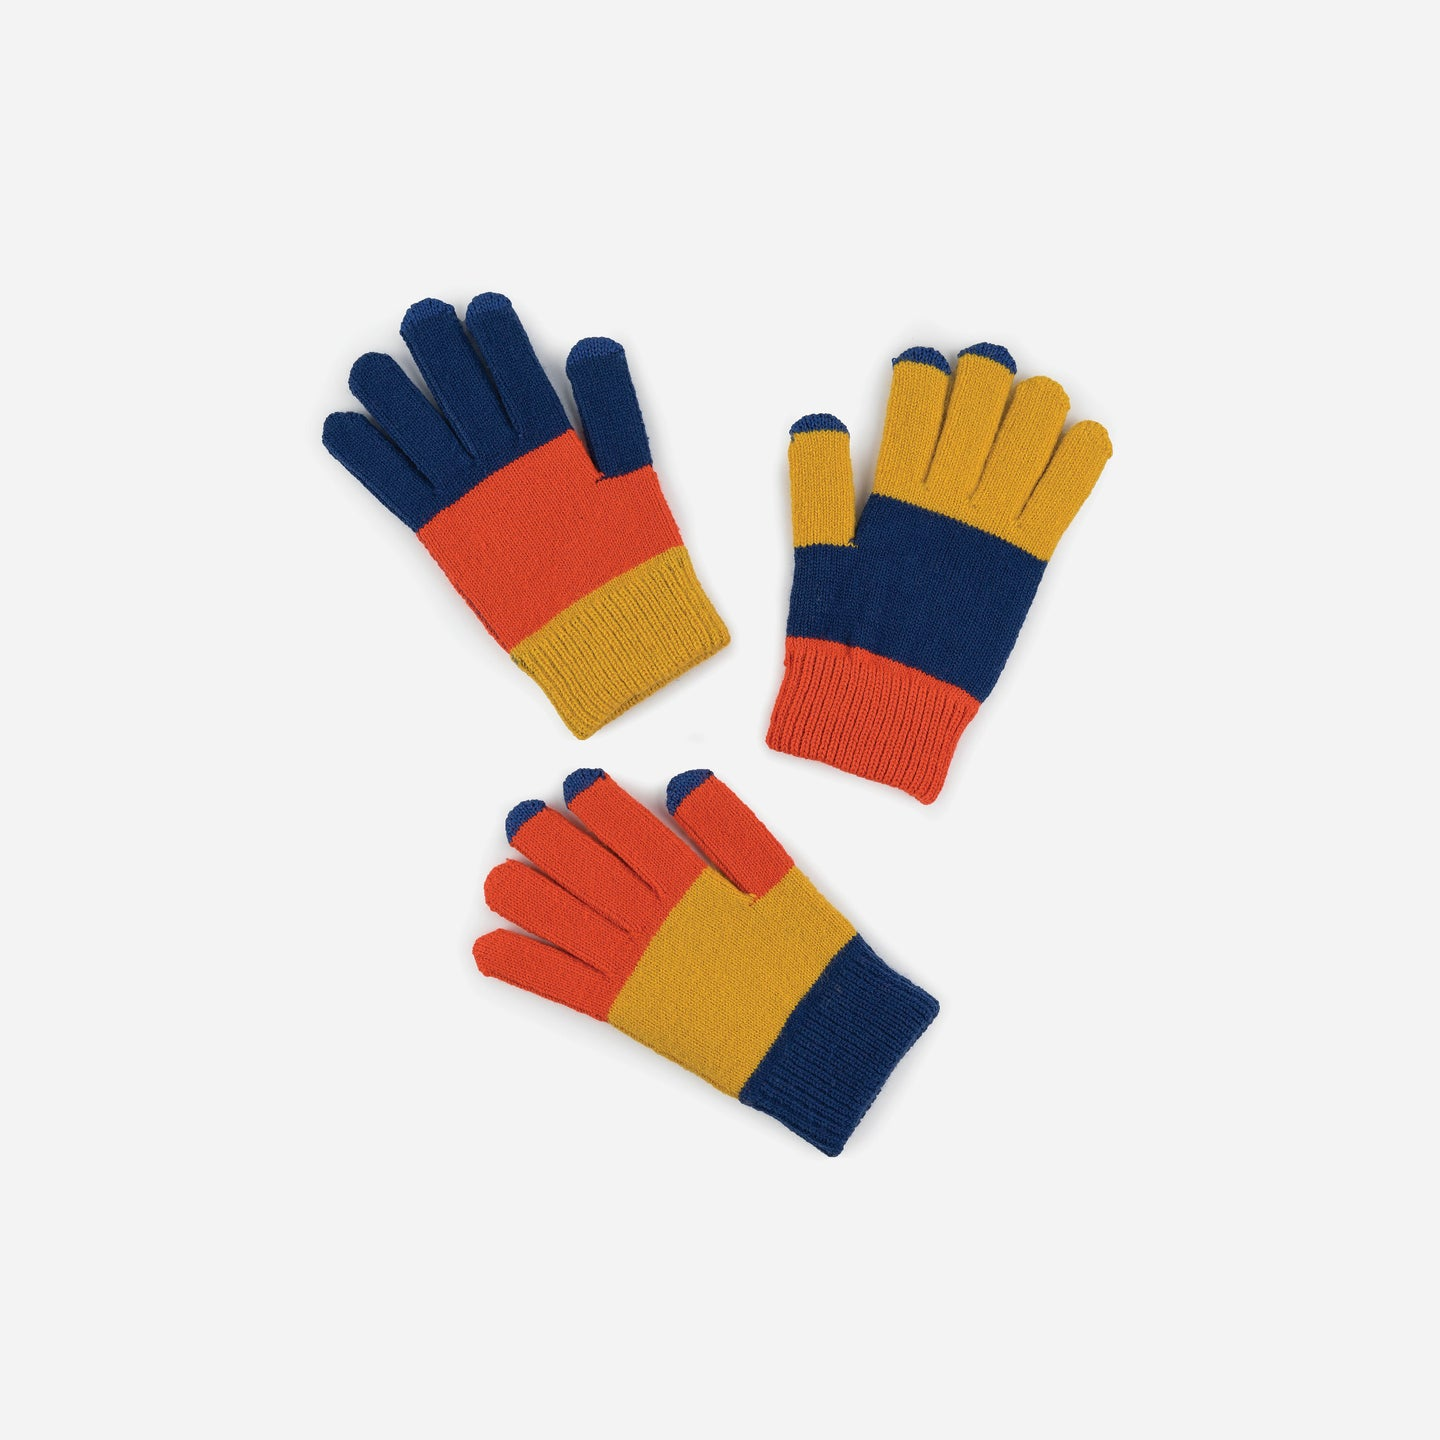 Pair and Spare Three 3 Gloves Set Kids